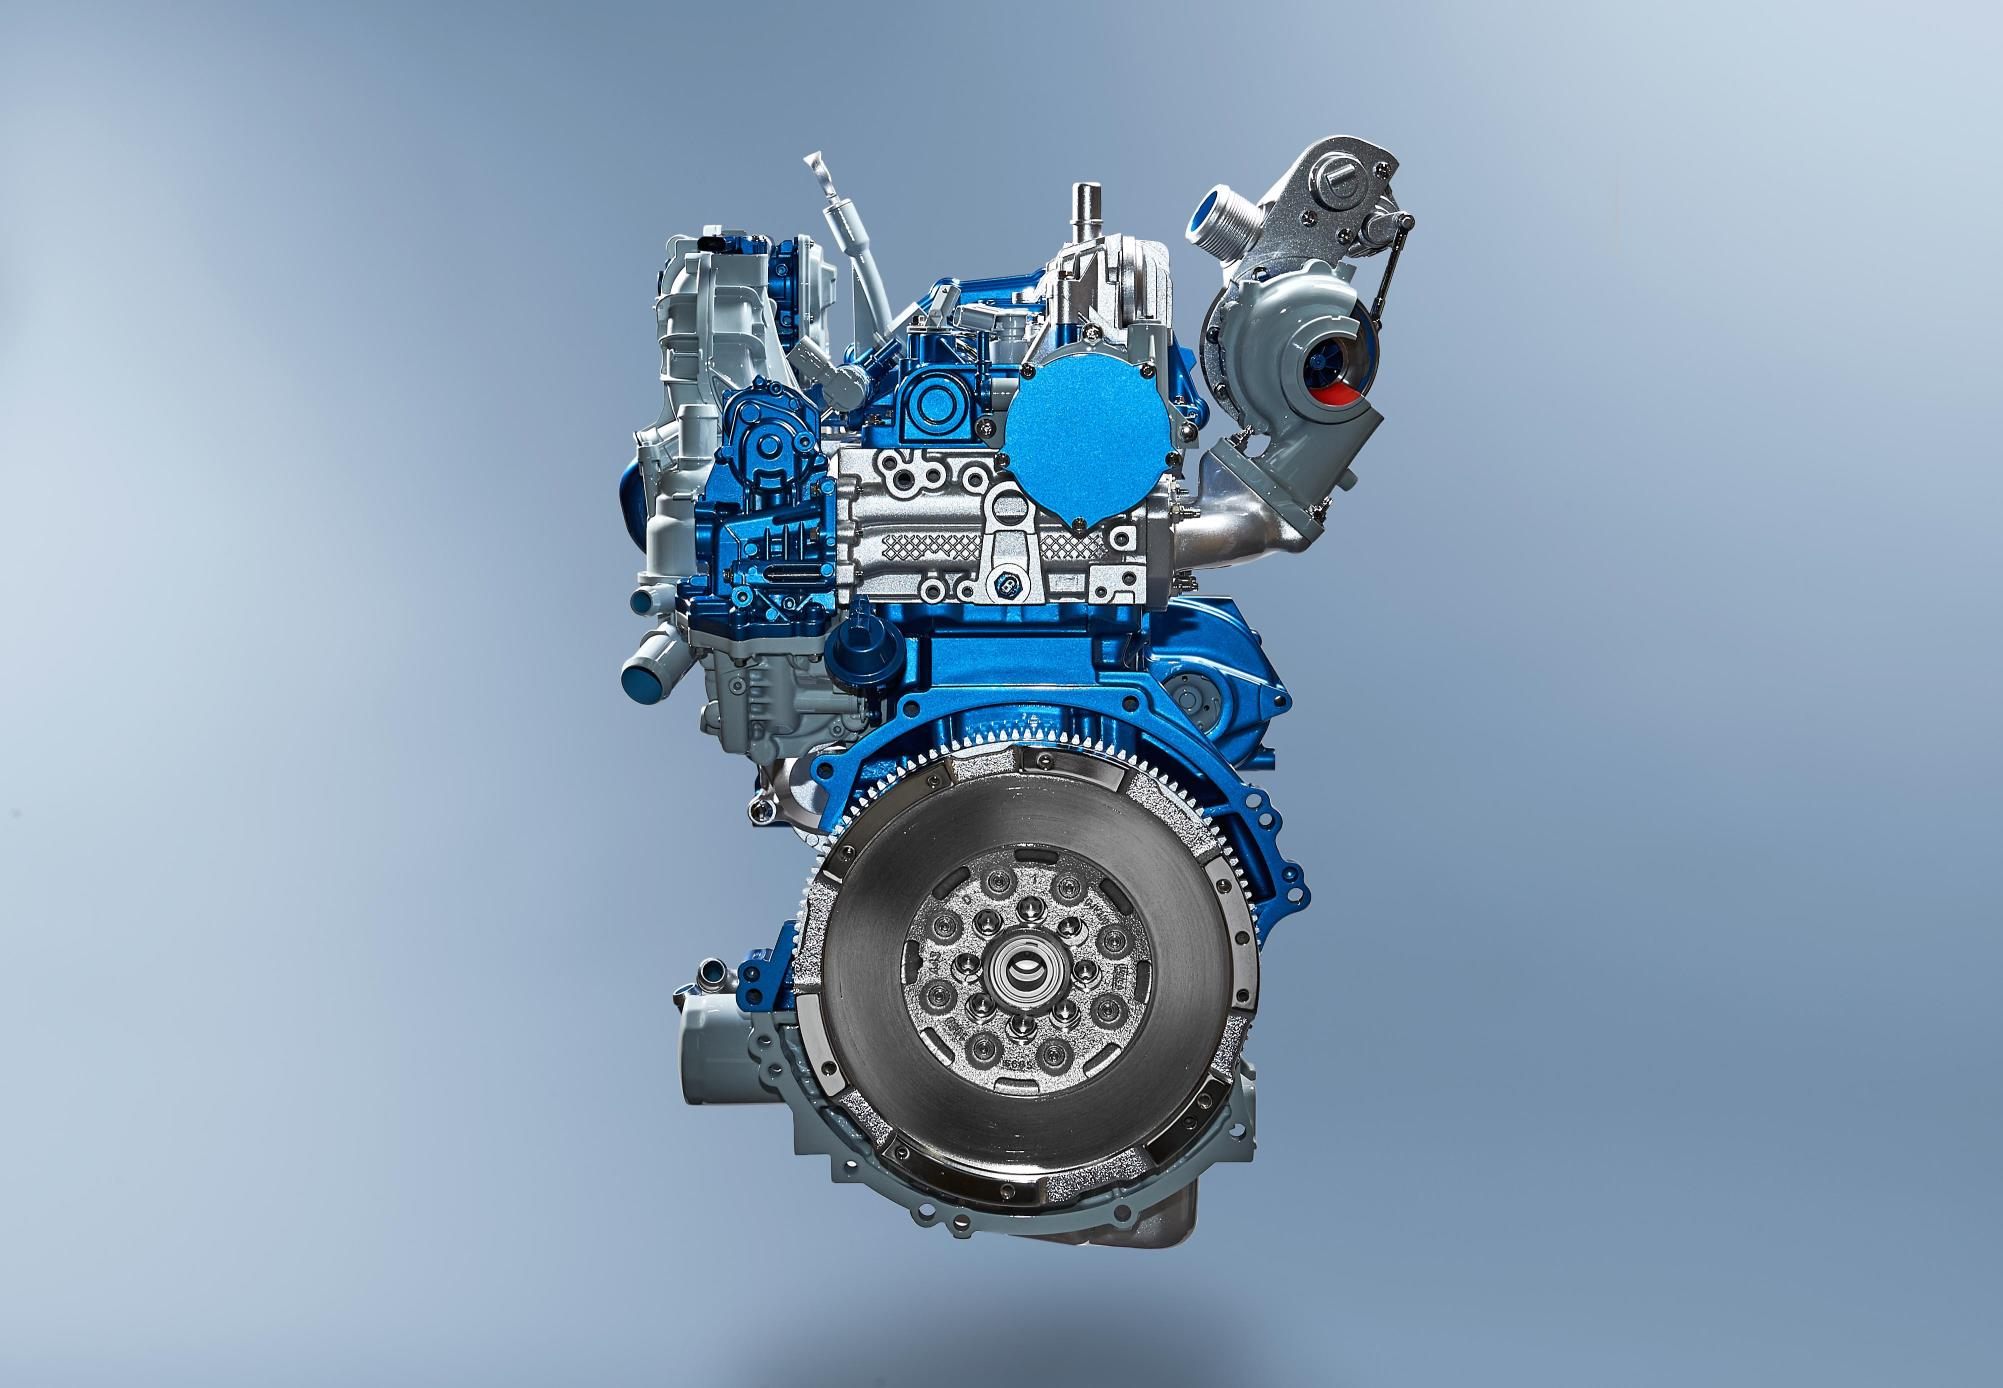 2 0 Ford Ecoblue Engine Described As Being A Diesel Game Changer Autoevolution